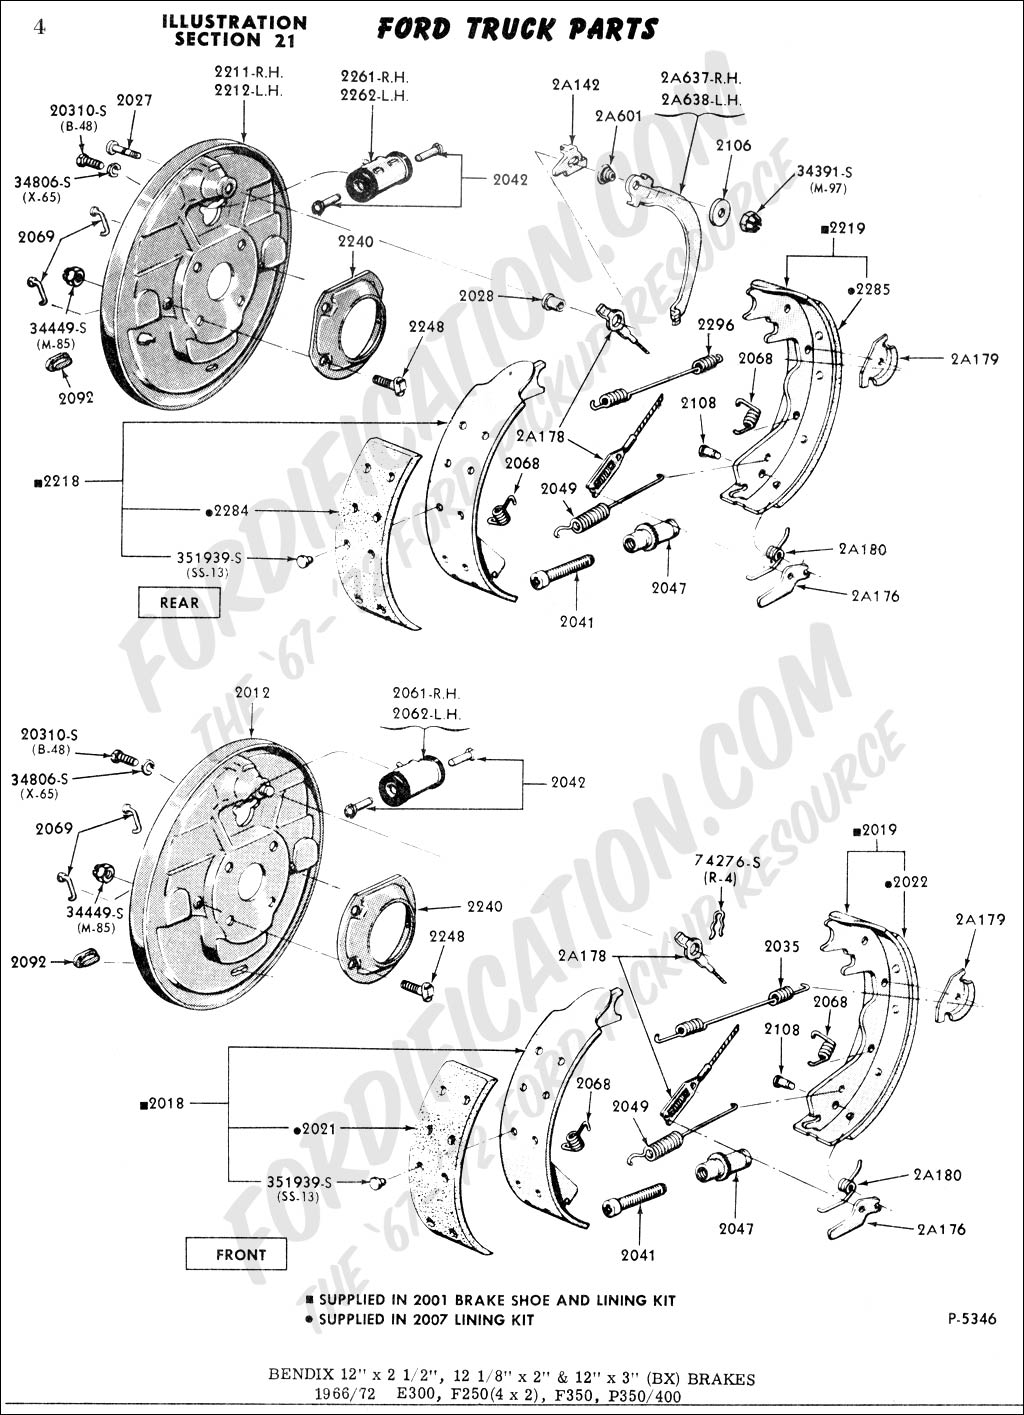 Saturn Vue Drum Brakes also Wheel Brake Assembly Diagram together with Rear Parking Drilled And Slotted Forged Dynalite Rear Brake Kit Mpn 140 7149 Dp together with Ford F 150 Why Is My Emergency Brake Stuck 356397 likewise 1998 Mazda Mpv Rear Break Replacement Procedure. on ford ranger brake shoes